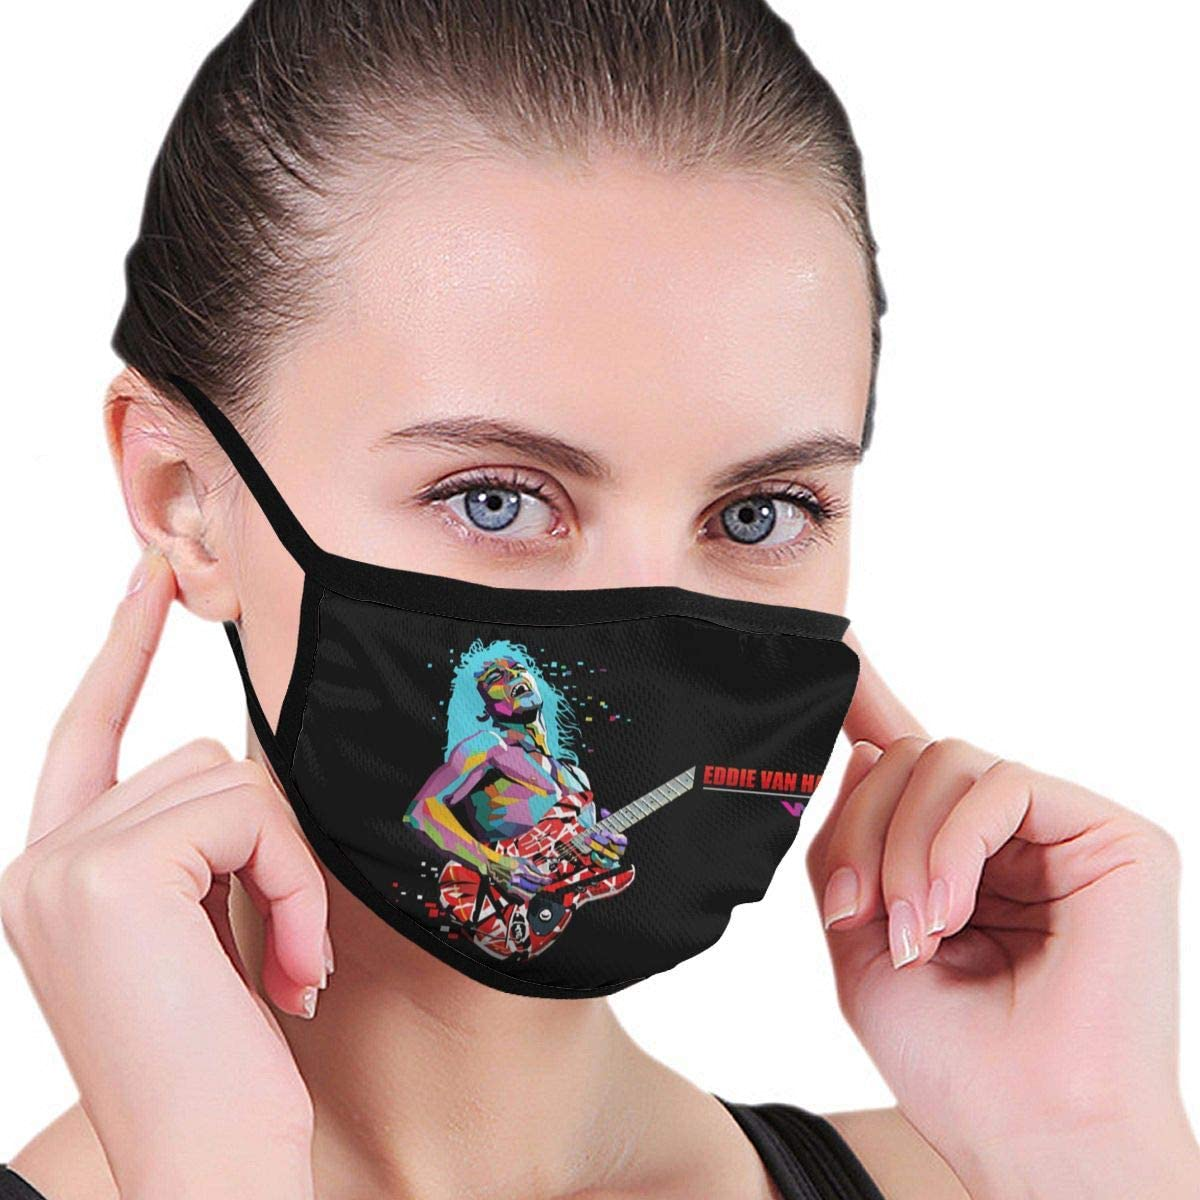 Wehoiweh Van Halen Dust Prevention Face Cover Mouth Cover Bandana Cool Lightweight